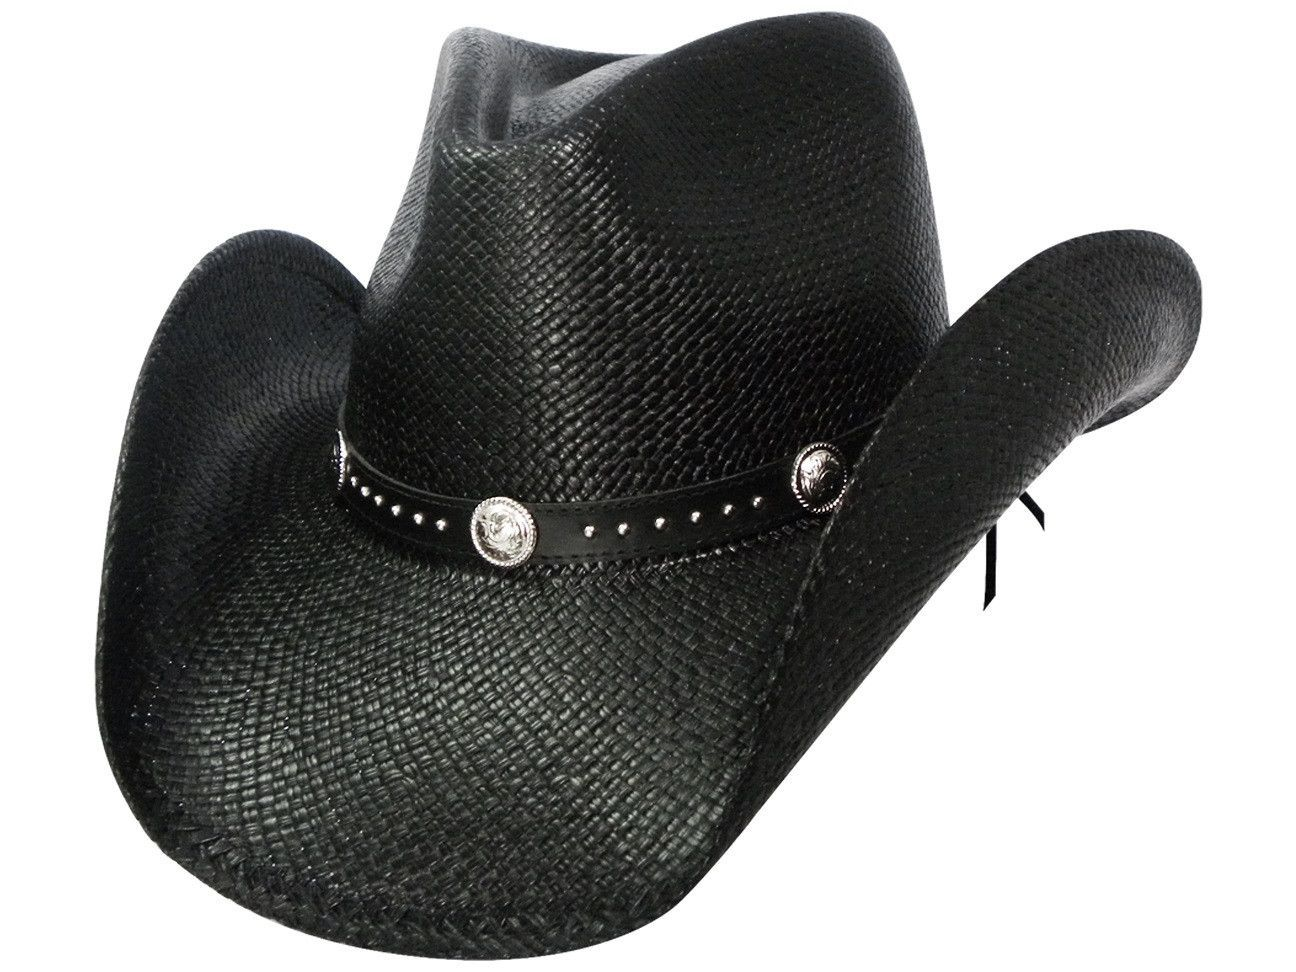 c9928845b TERRI Austin Black Panama Straw Cowboy Hat with Pinchfront Crown in ...